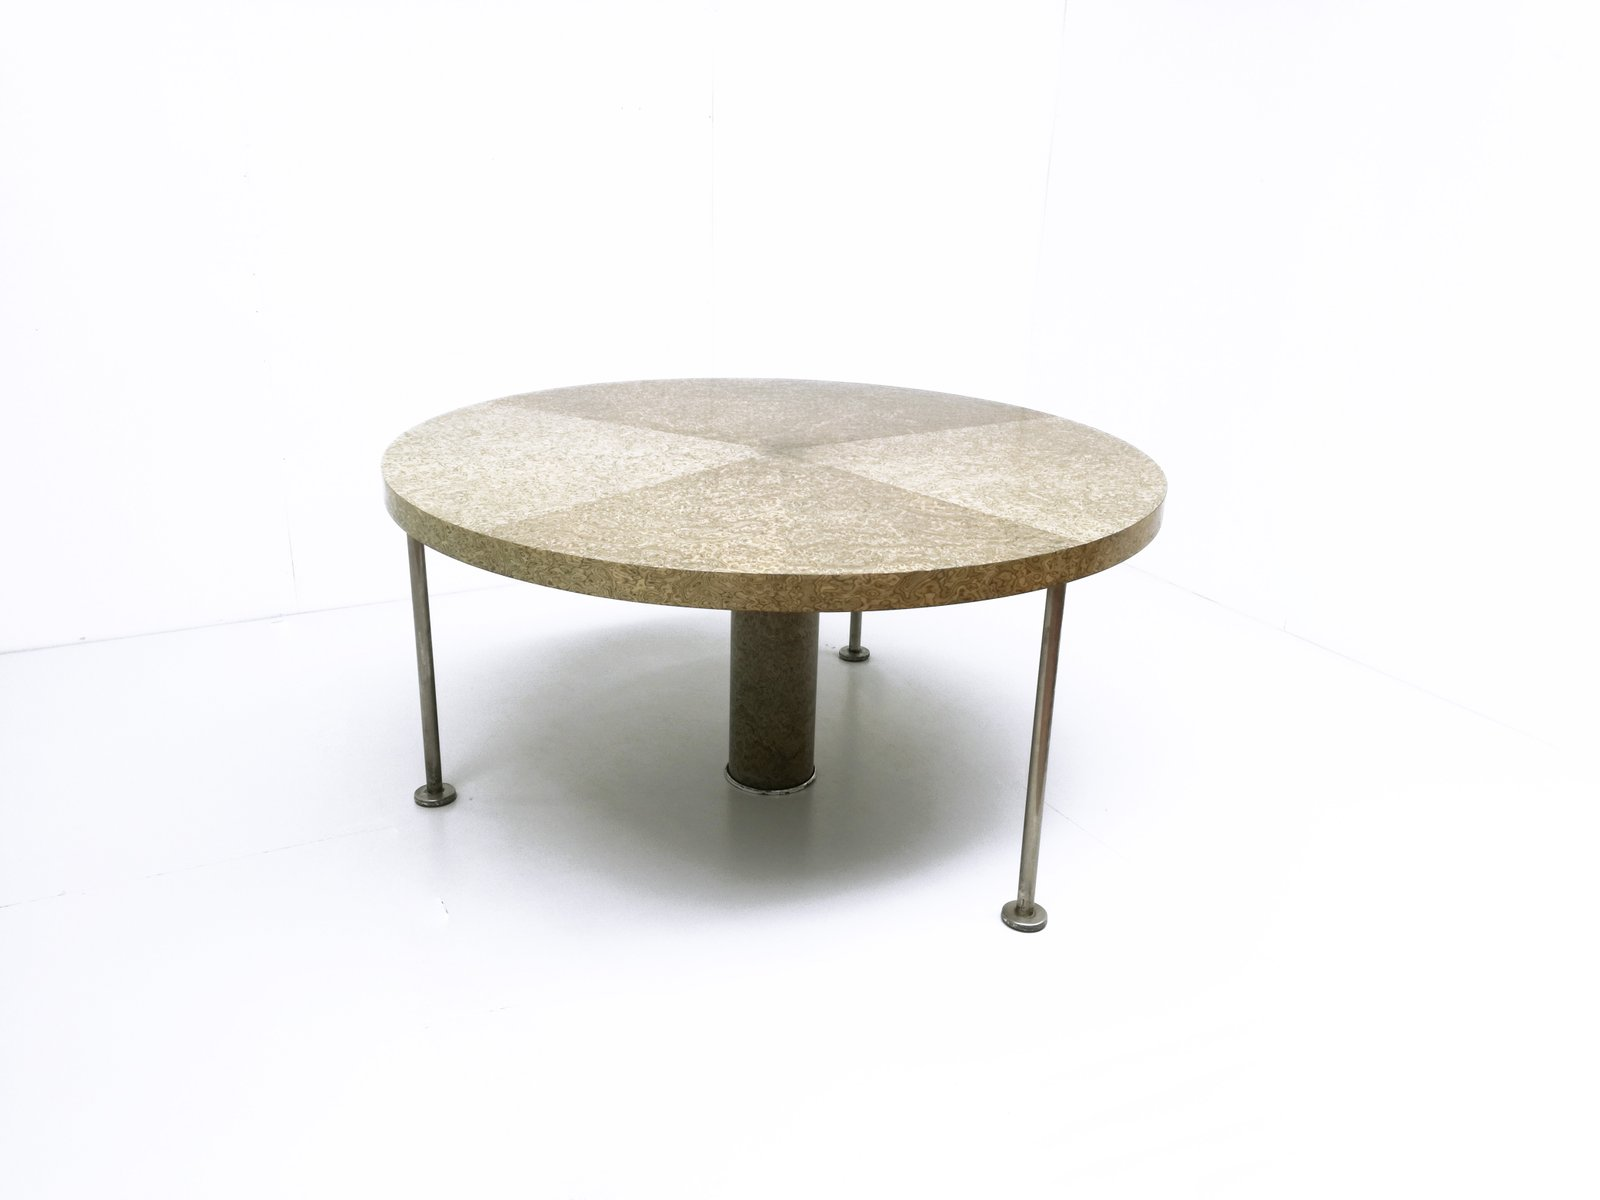 Vintage ospite table by ettore sottsass for zanotta for for Table zanotta